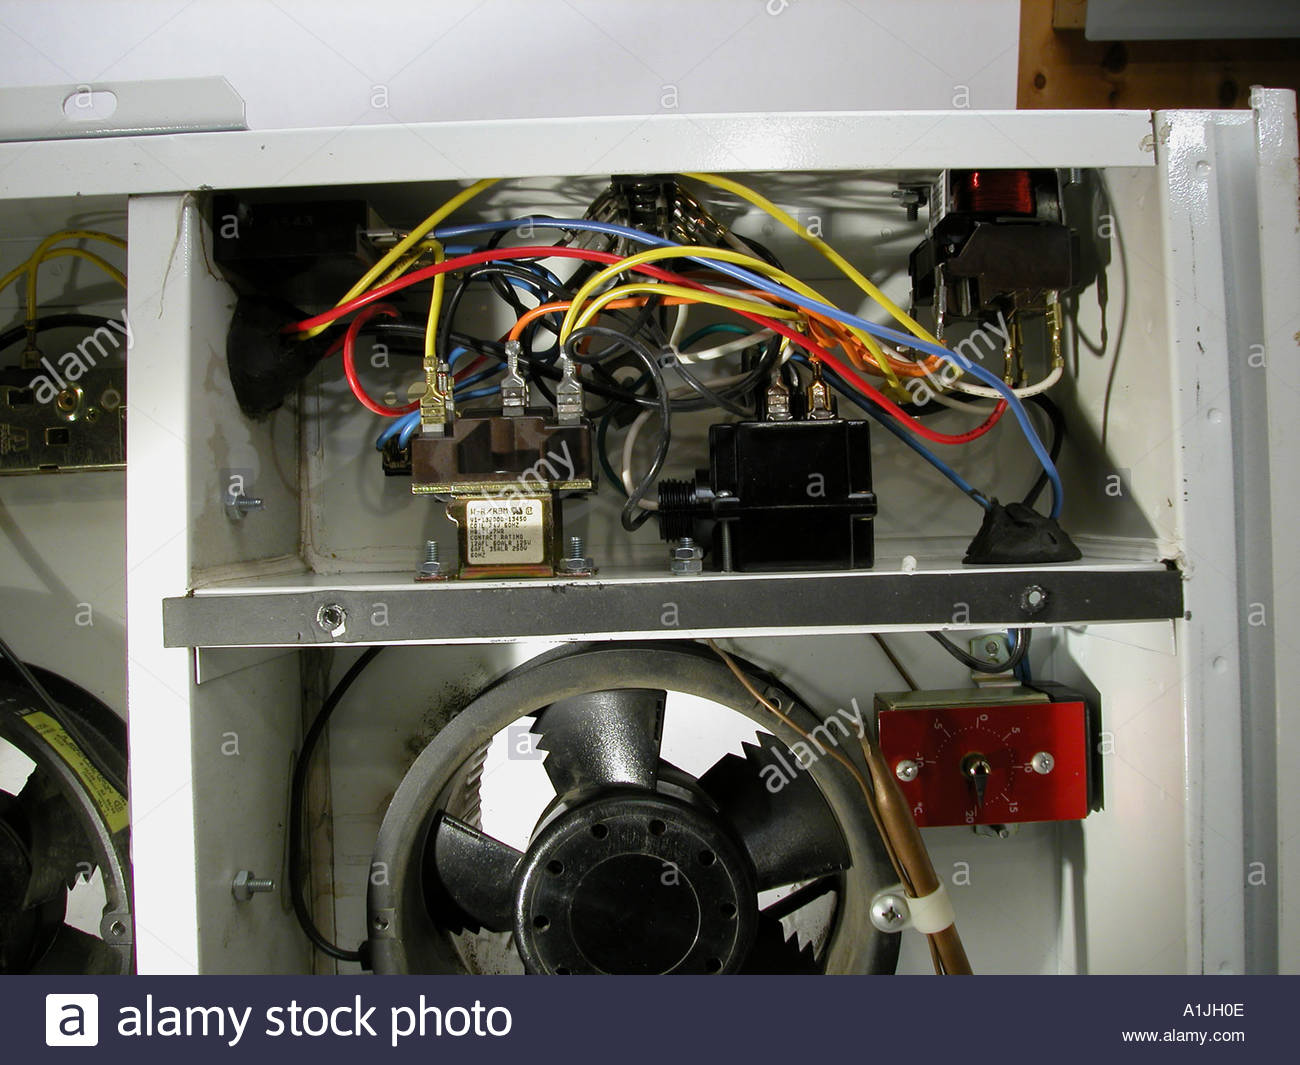 Relays Stock Photos Images Alamy Relay Electric Virginia Beach Complex Electrical Wiring In Air Exchanger Controller Showing Thermocouple Humidity Image